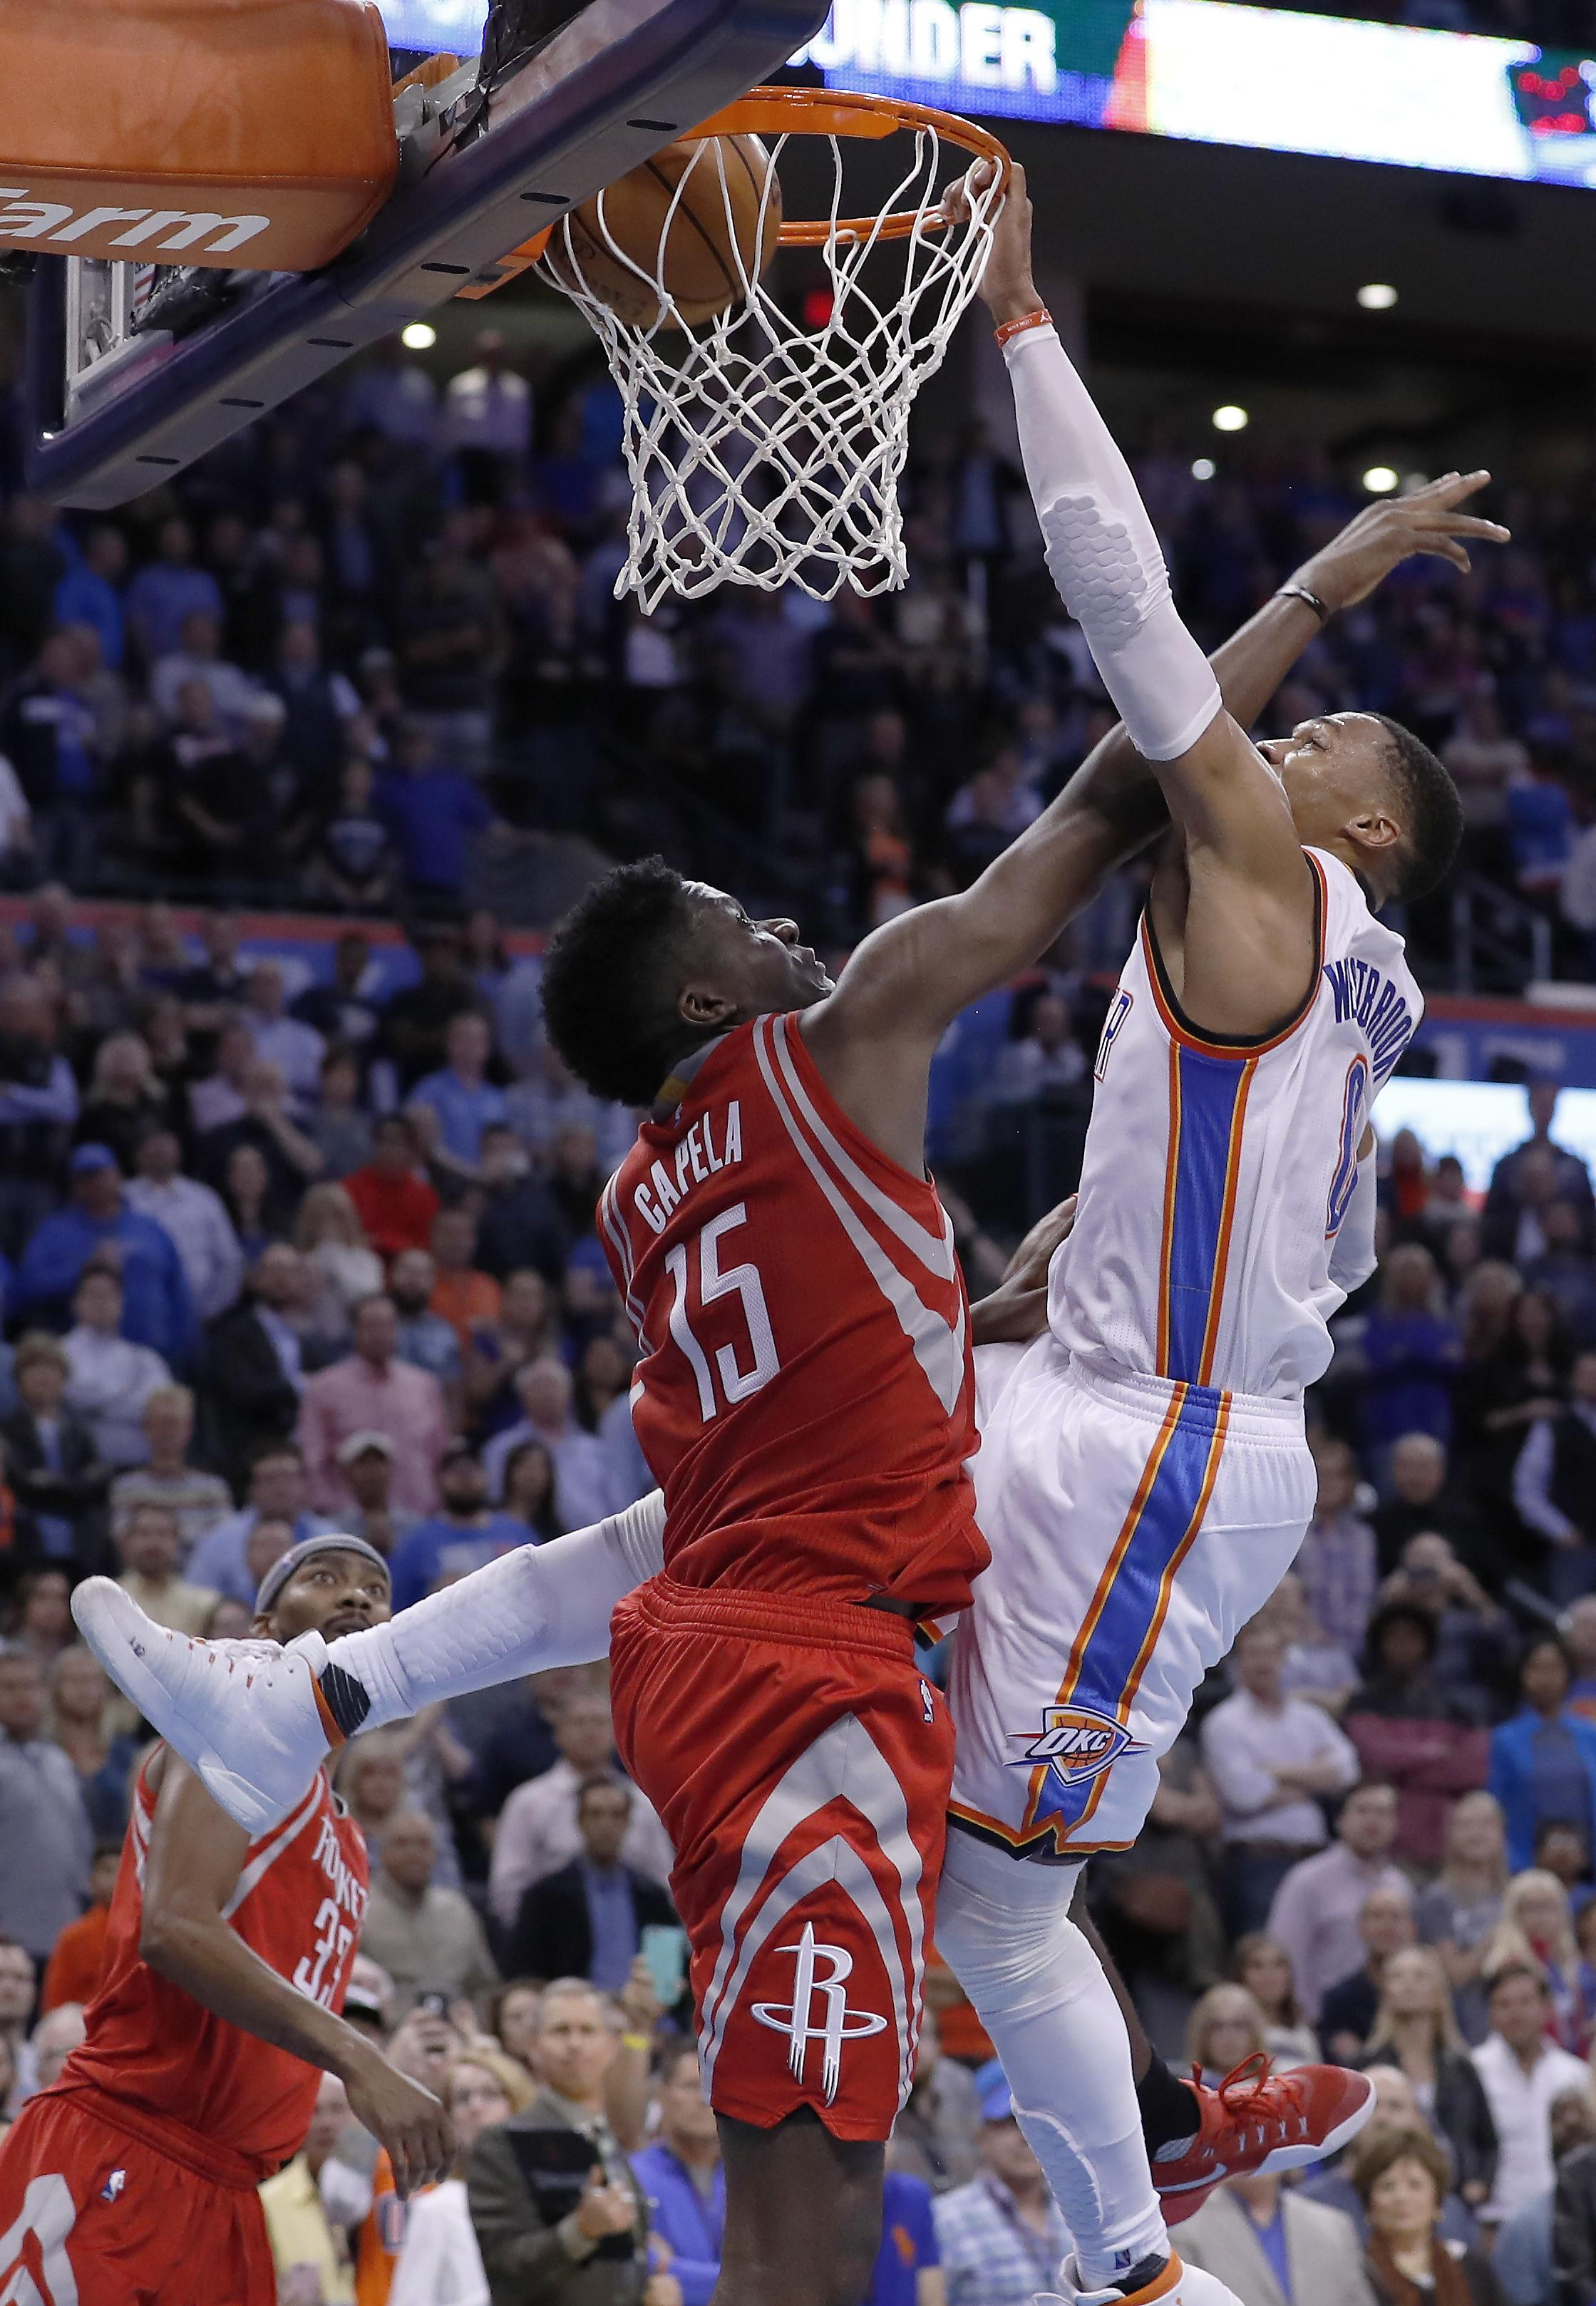 Nba Capsules Westbrook Scores 30 As Thunder Top Rockets The Spokesman Review